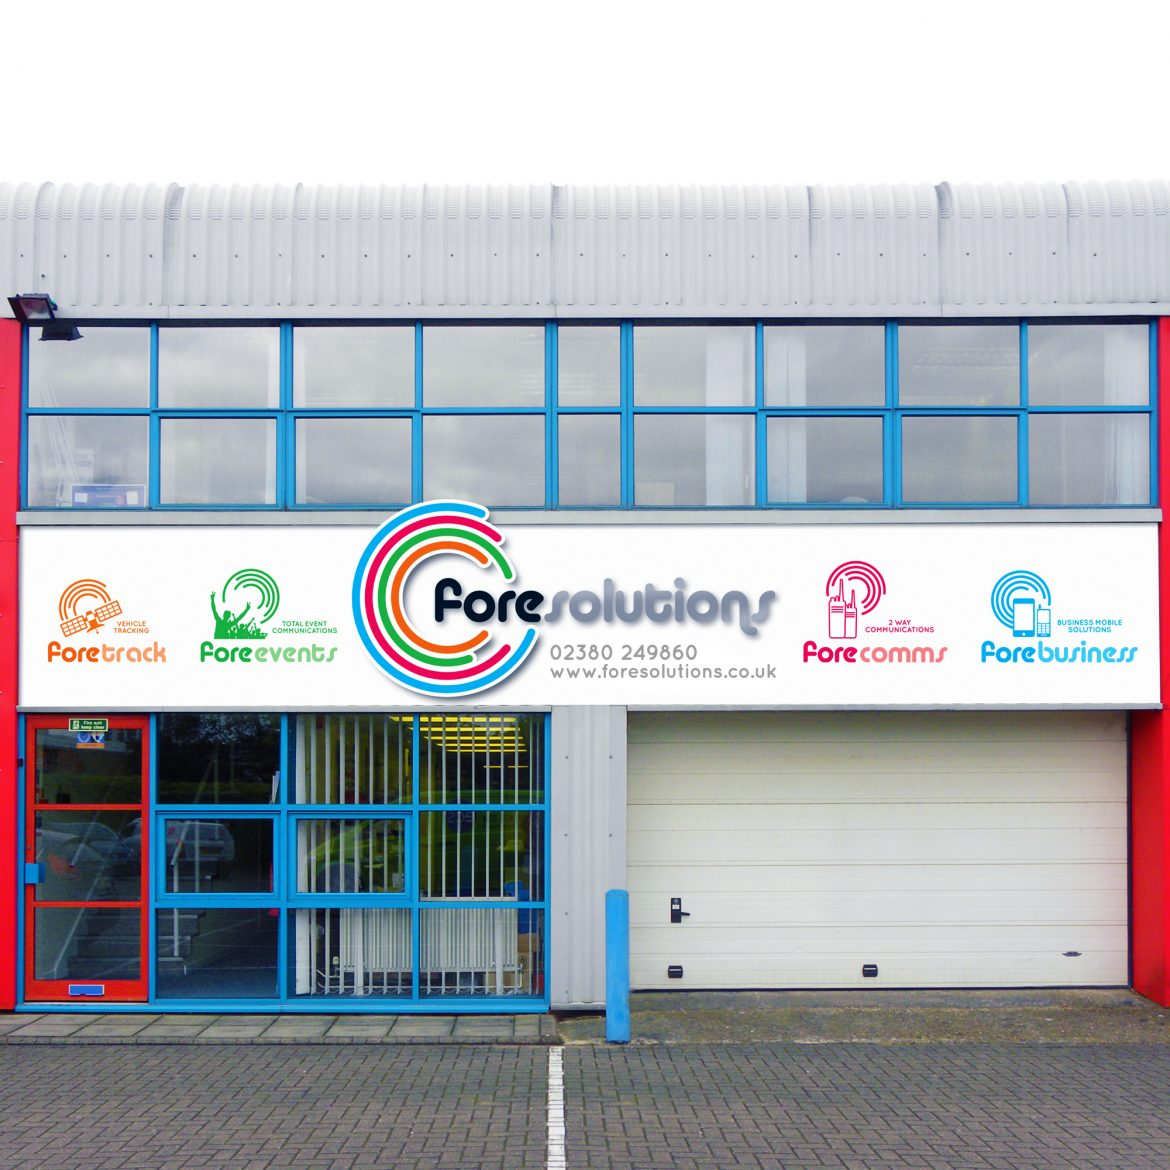 fore solutions signage on their workshop